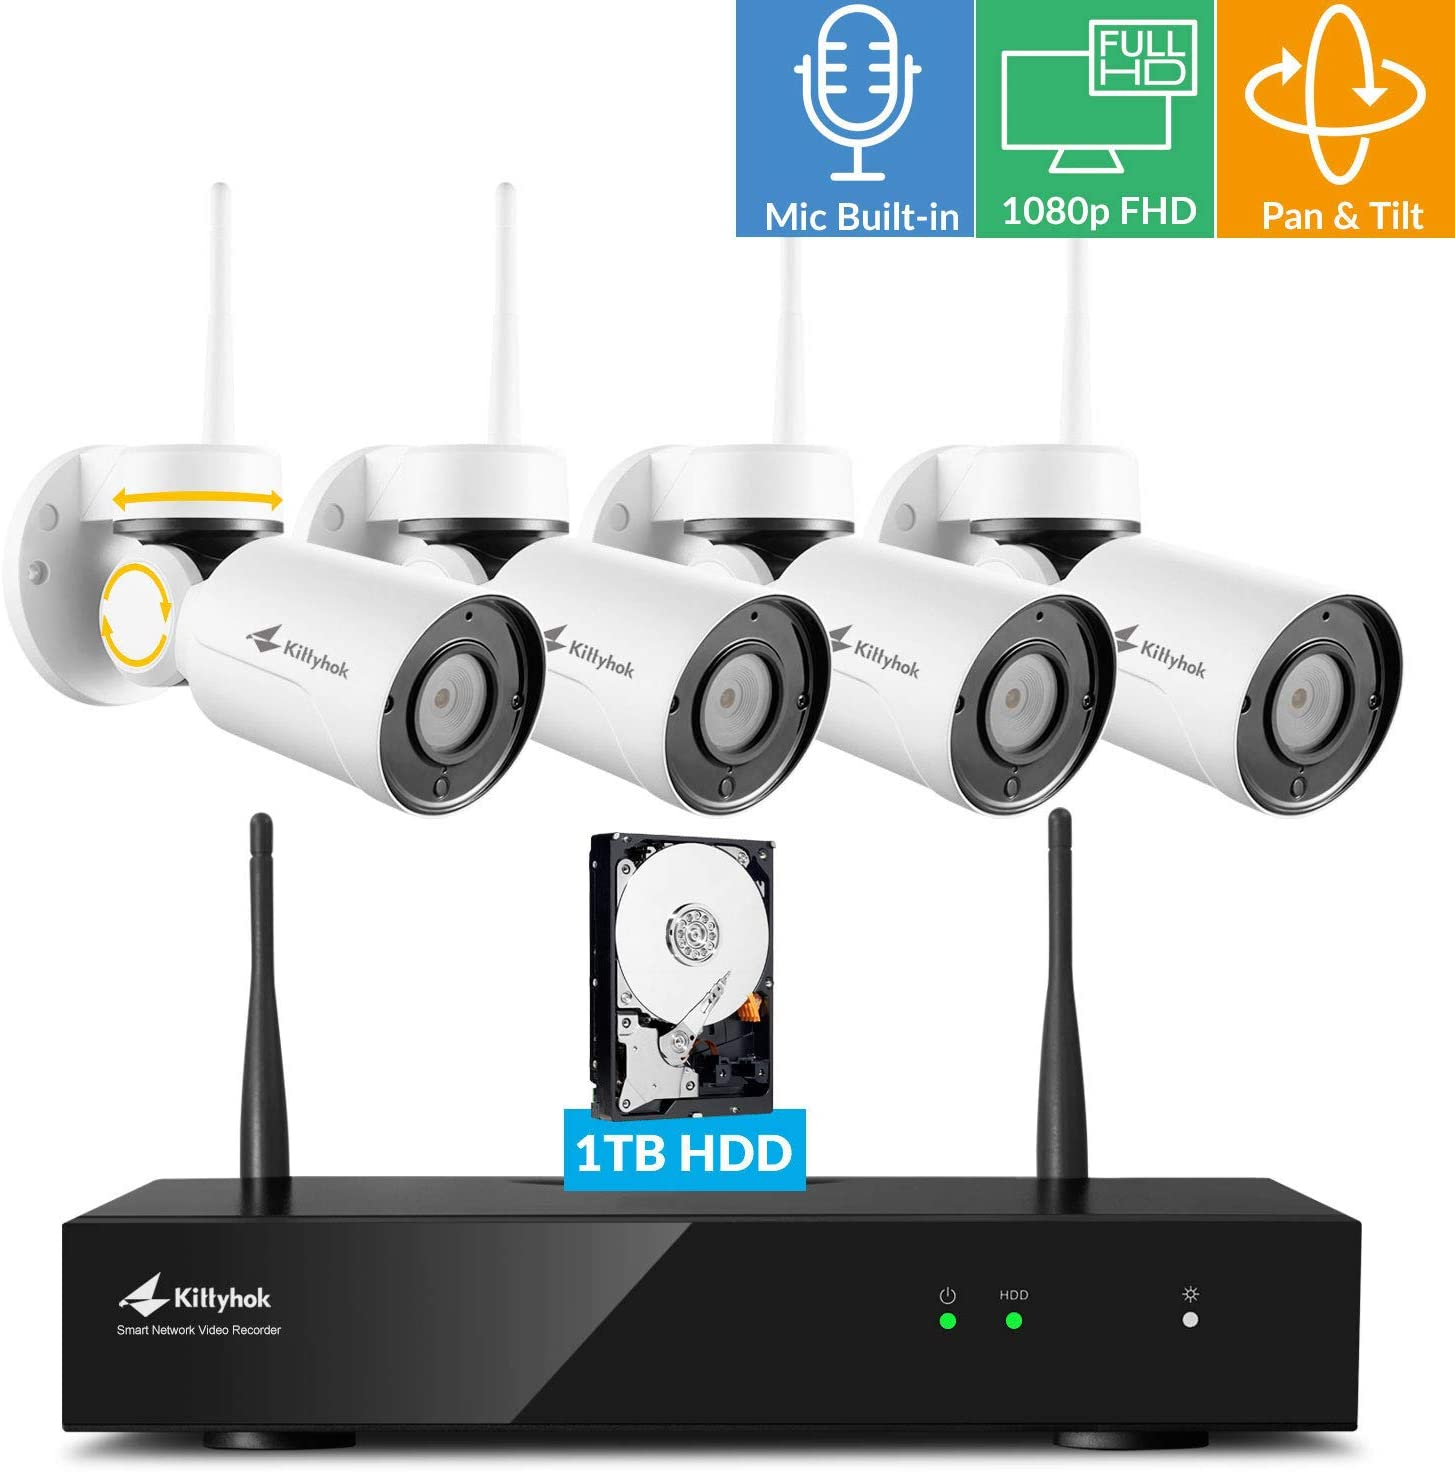 Kittyhok 8CH Home Wireless Security Camera System with Audio, 4pcs 1080p FHD PTZ WiFi Cameras Outdoor Indoor, 100ft Night Visioin, Weatherproof, Motion Detection, Remote View Control, 1TB HDD